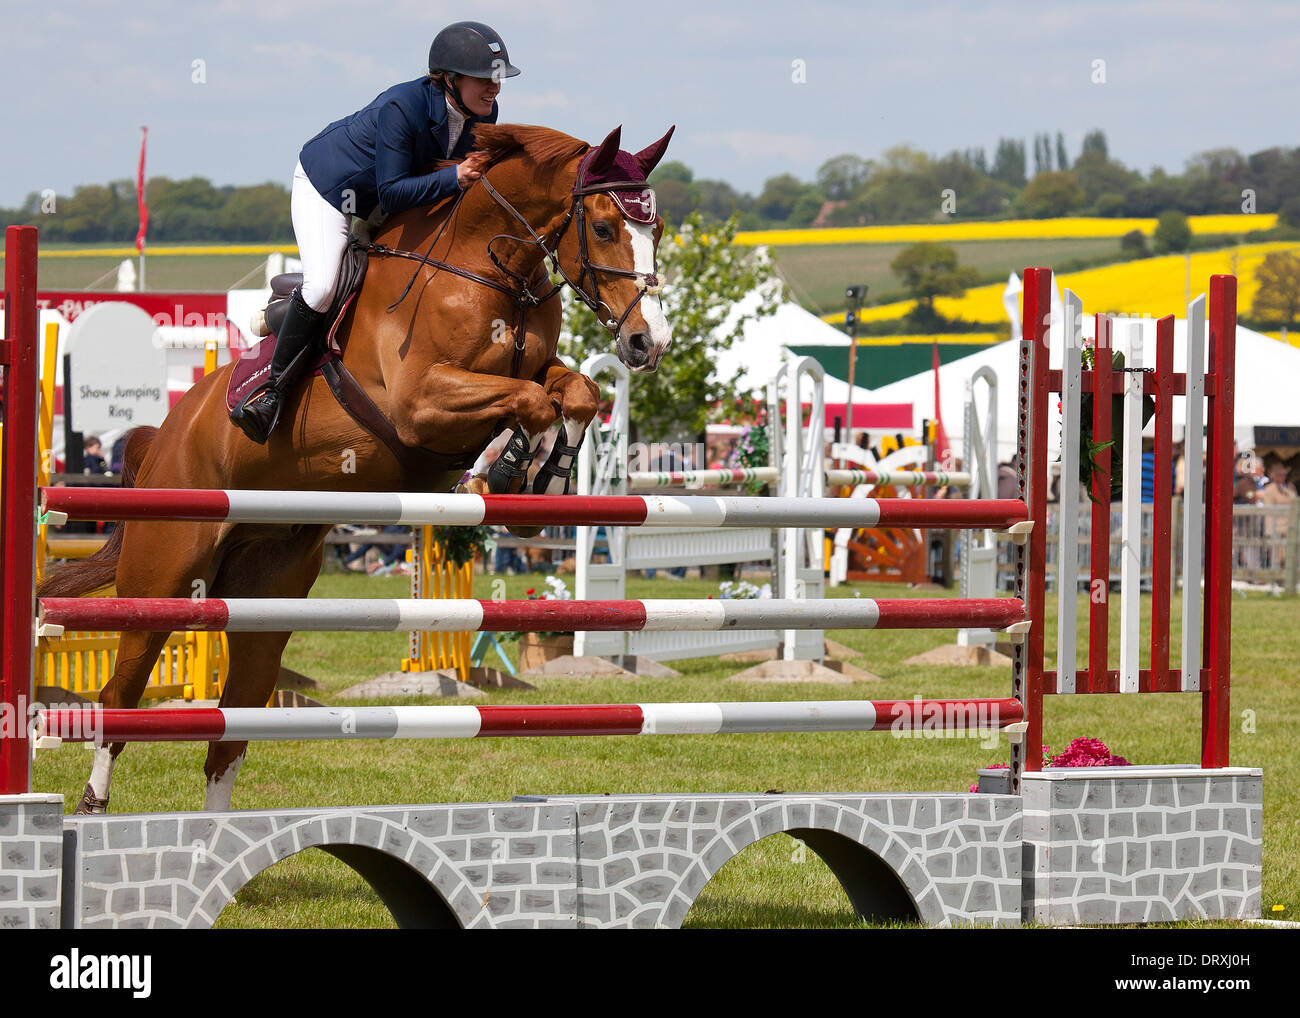 Action from the Showjumping Ring at the 2013 Herts County Show - Stock Image